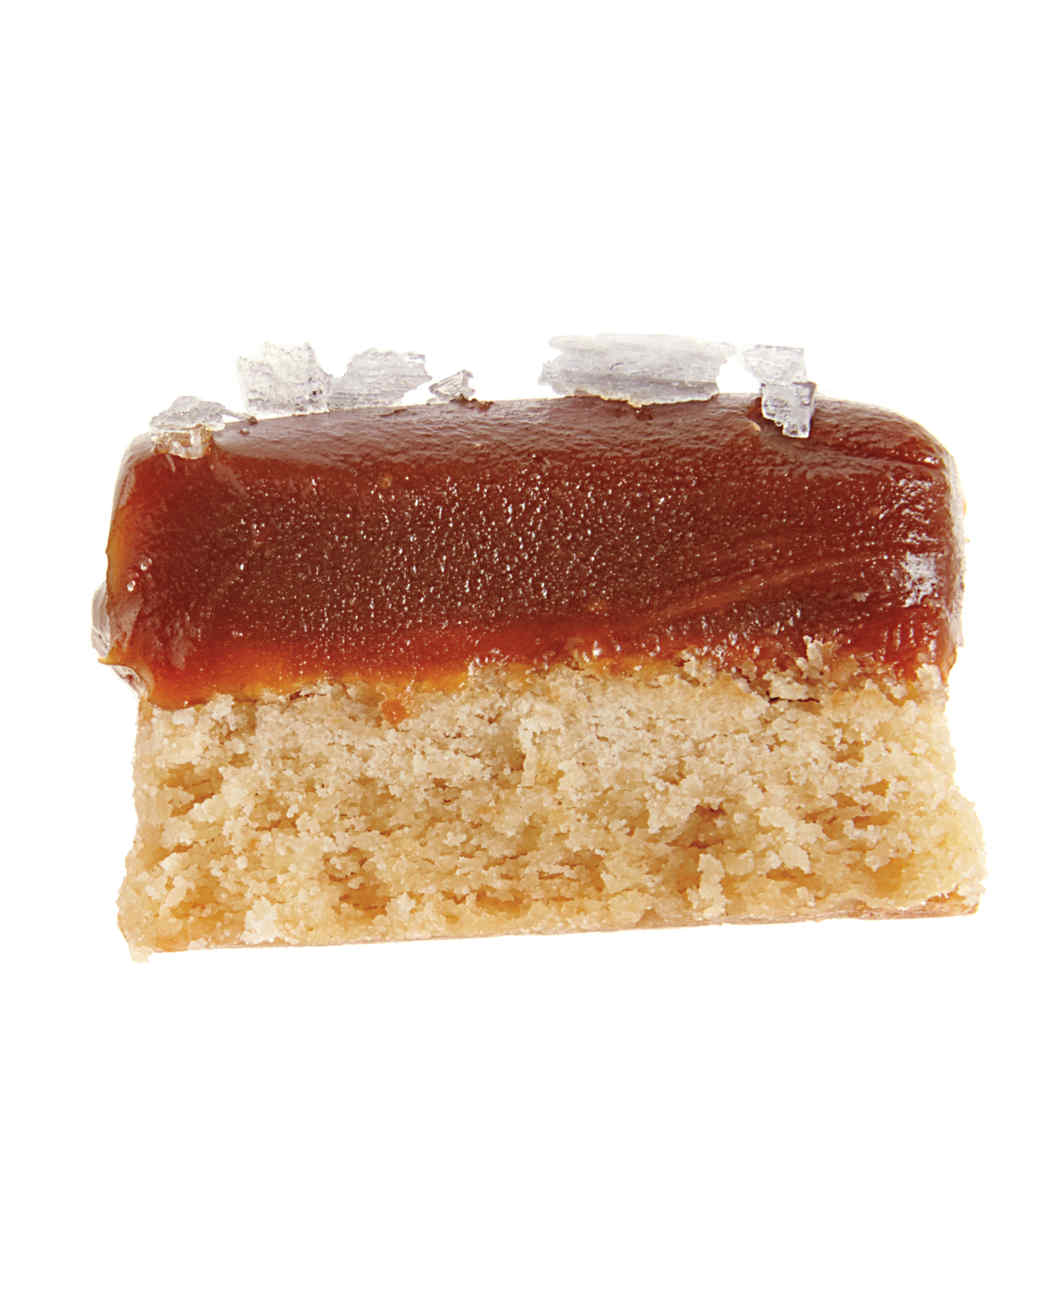 chocolate-caramel-bars-0168-d112434.jpg